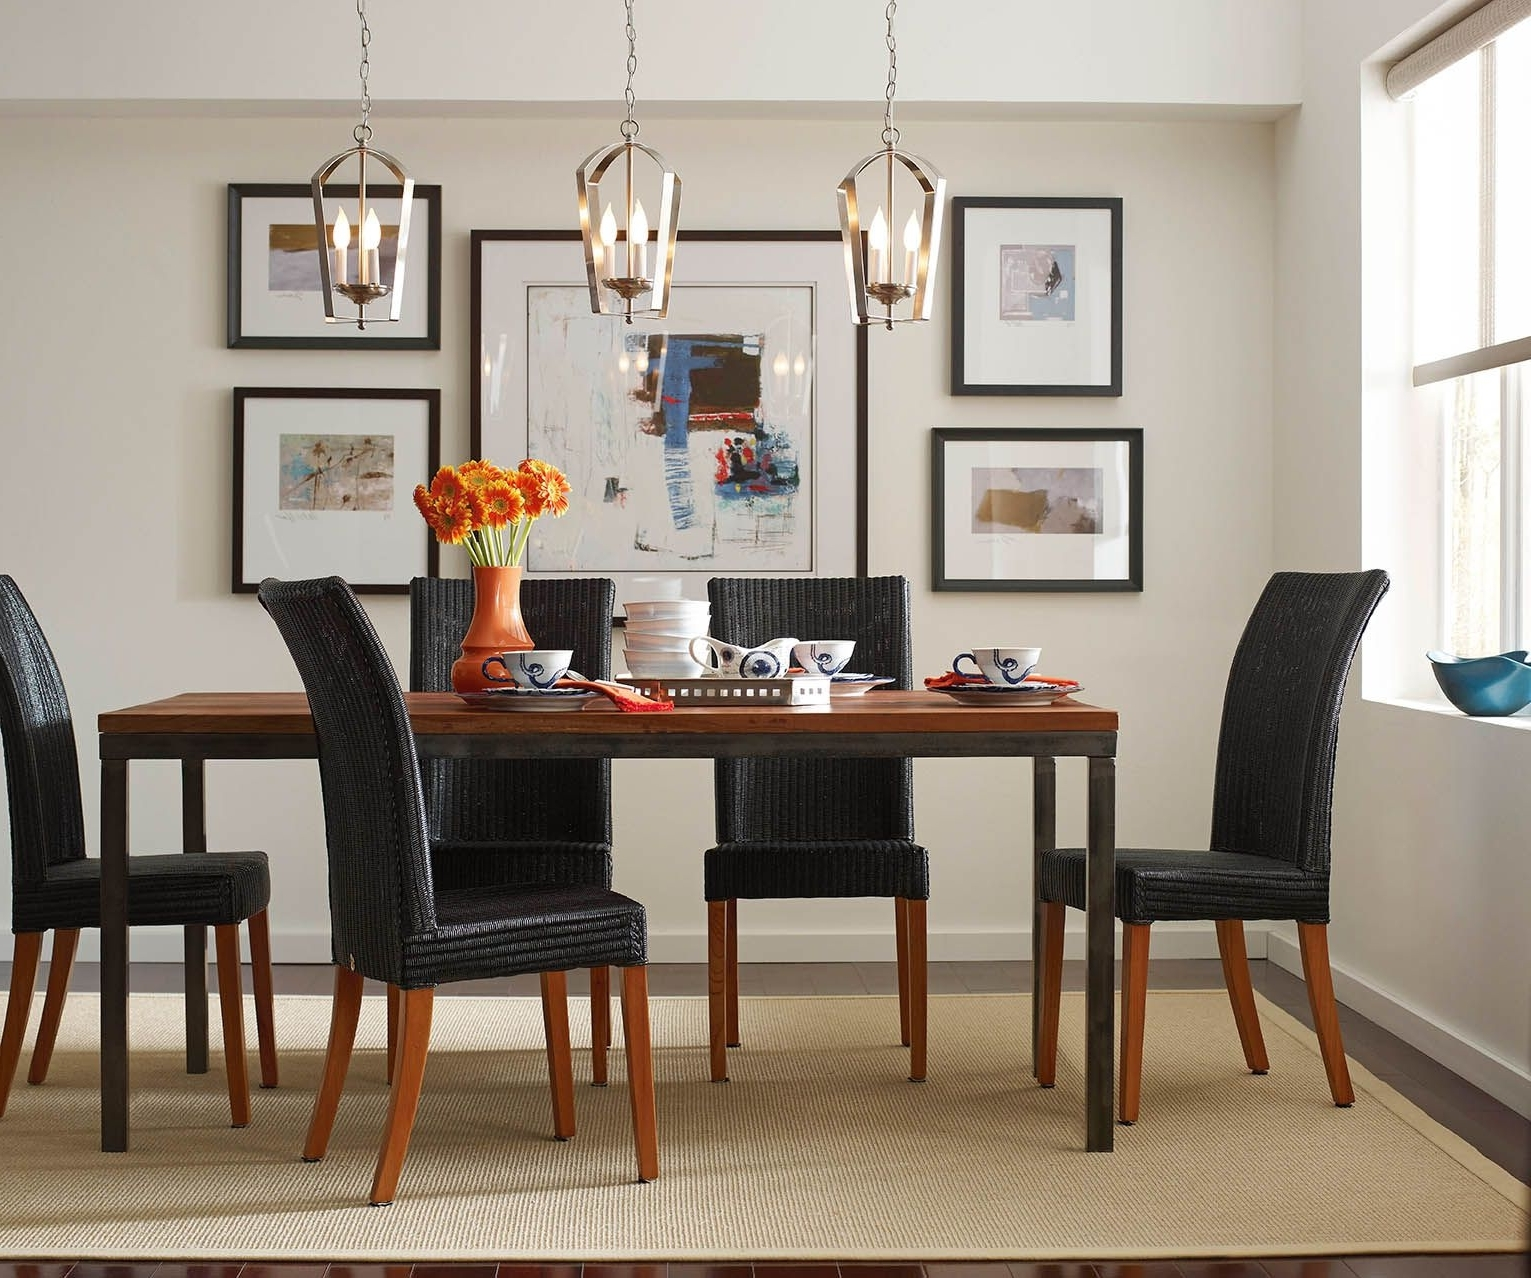 Current Image Result For 3 Drum Pendant Over Dining Table (View 9 of 25)